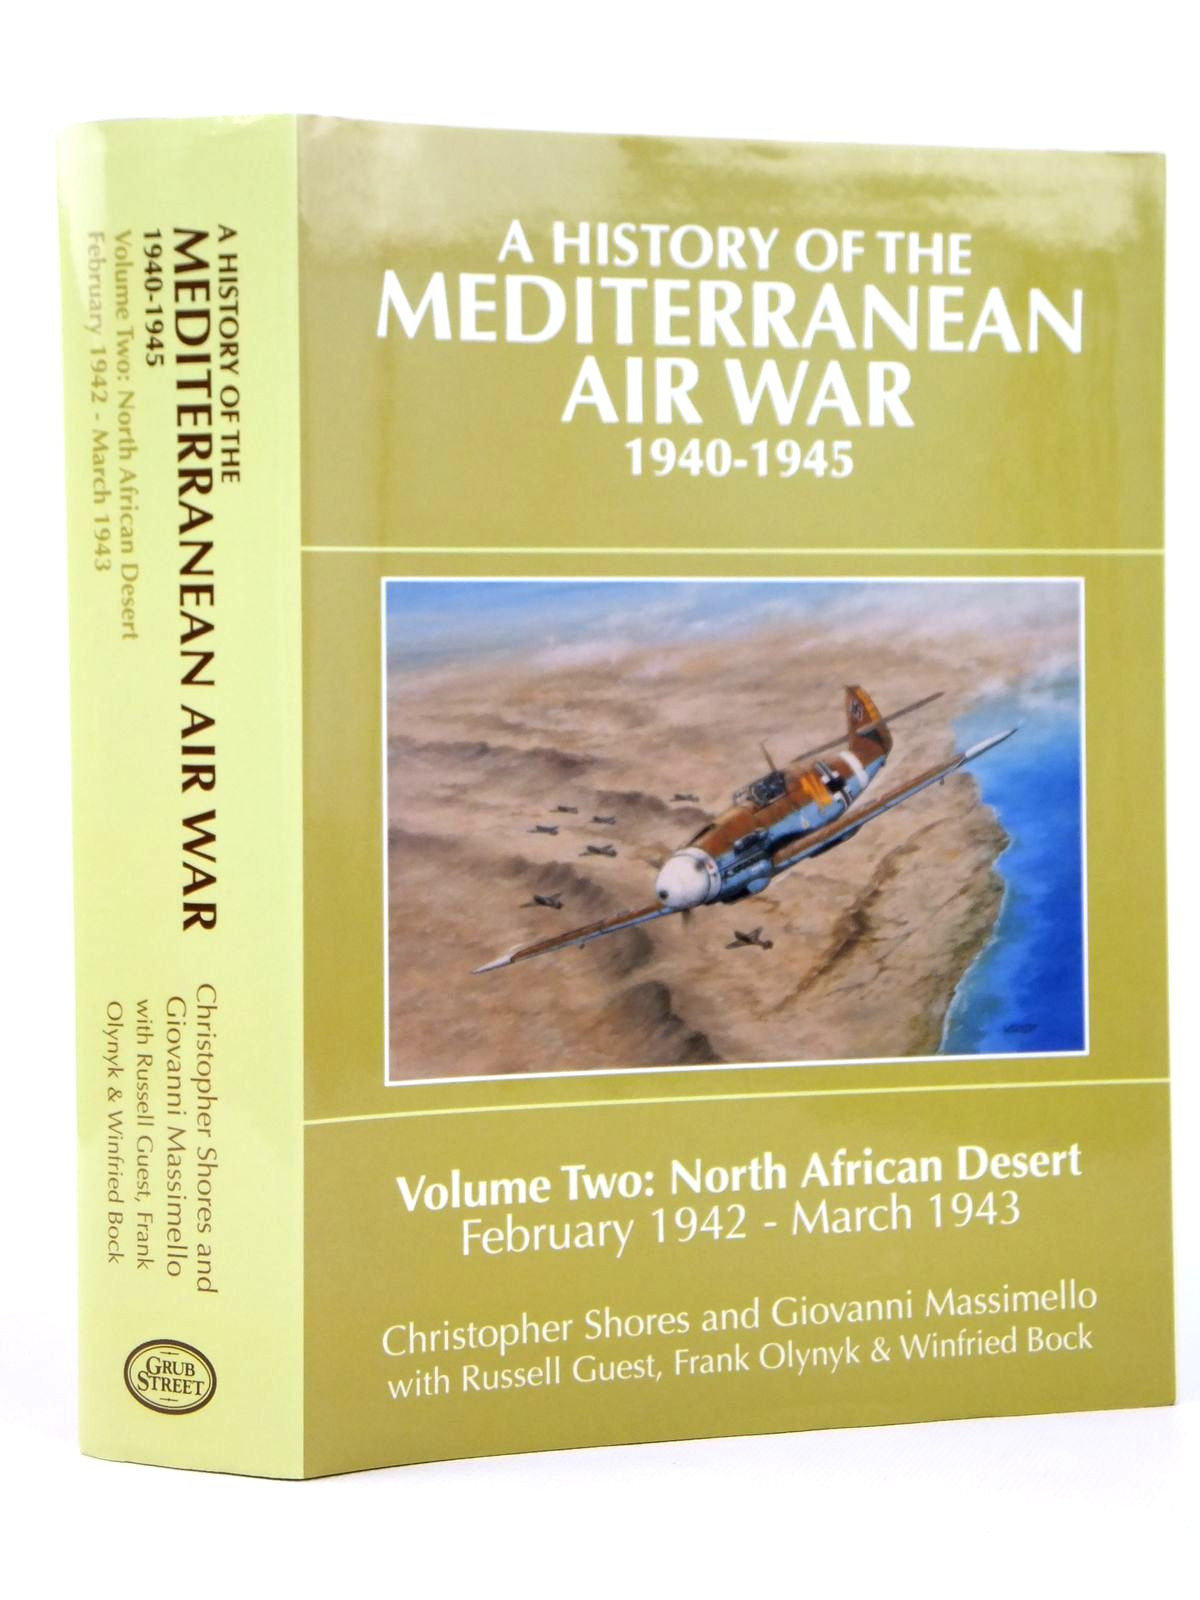 Photo of A HISTORY OF THE MEDITERRANEAN AIR WAR 1940-1945 VOLUME TWO: NORTH AFRICAM DESERT FEBRUARY 1942 - MARCH 1943 written by Shores, Christopher<br />Massimello, Giovani<br />Guest, Russell<br />Olynyk, Frank<br />Bock, Winfried published by Grub Street (STOCK CODE: 2122159)  for sale by Stella & Rose's Books